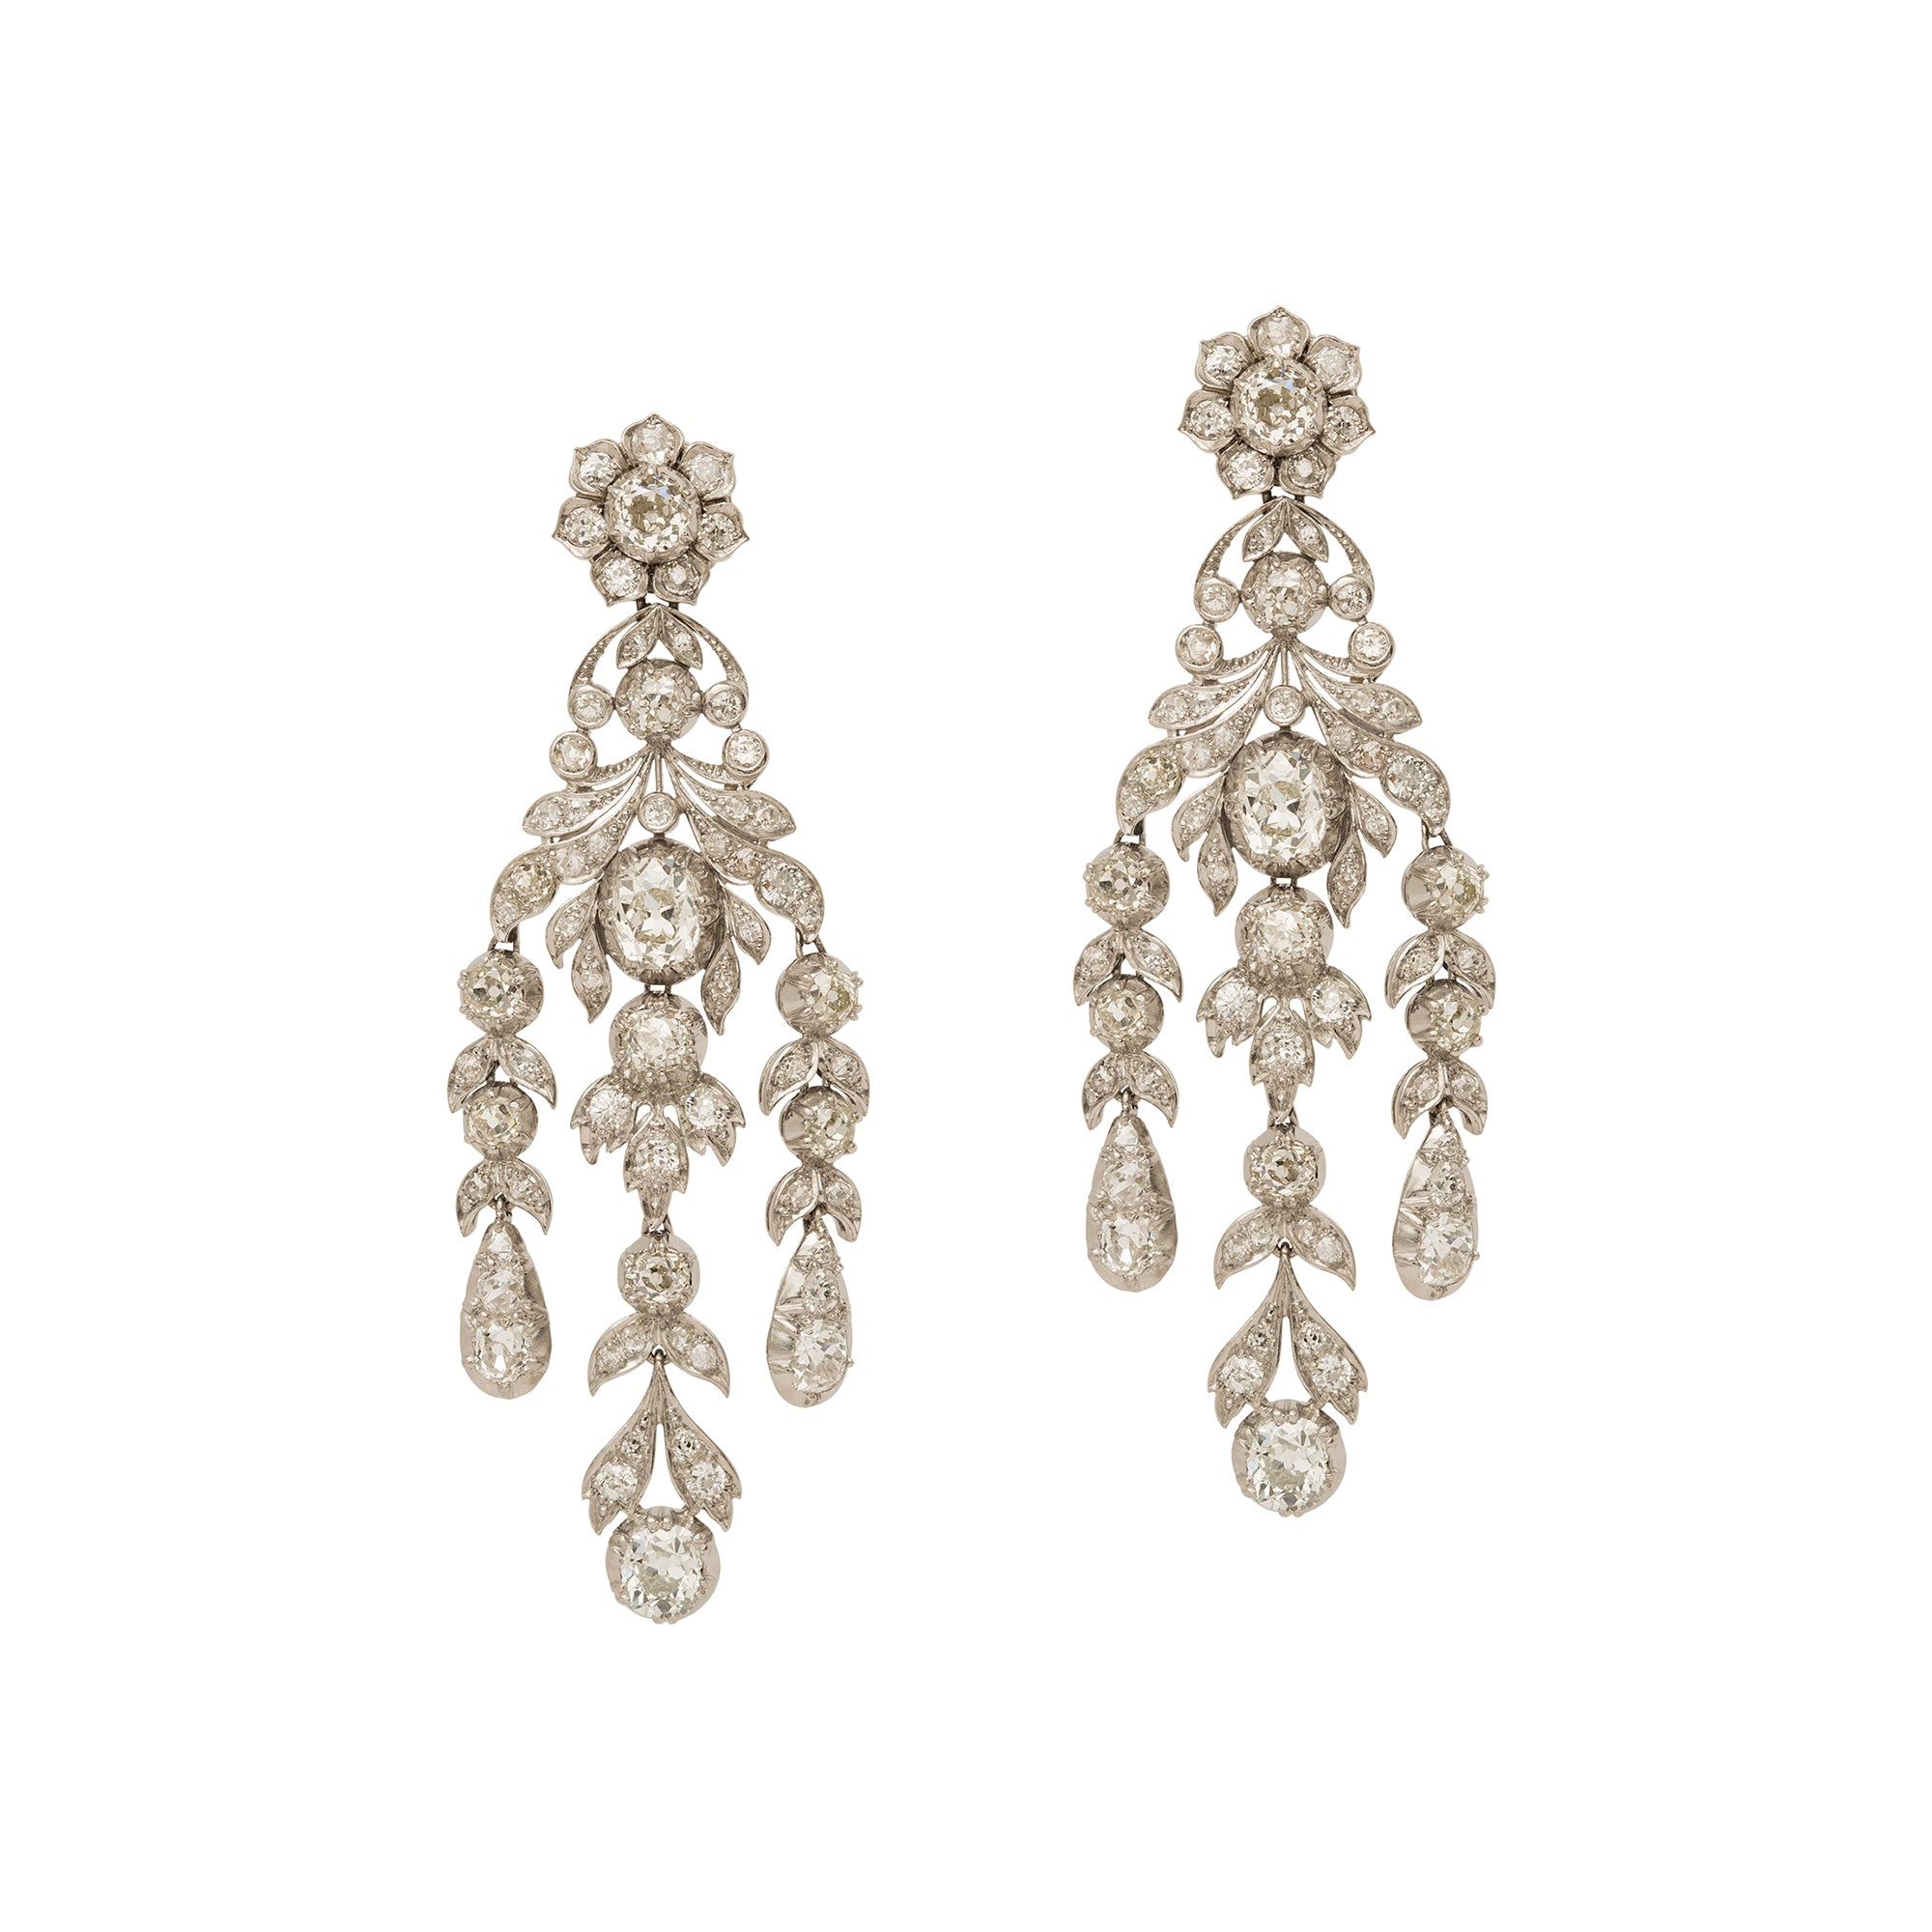 Victorian Platinum Earrings from Broken English Jewelry